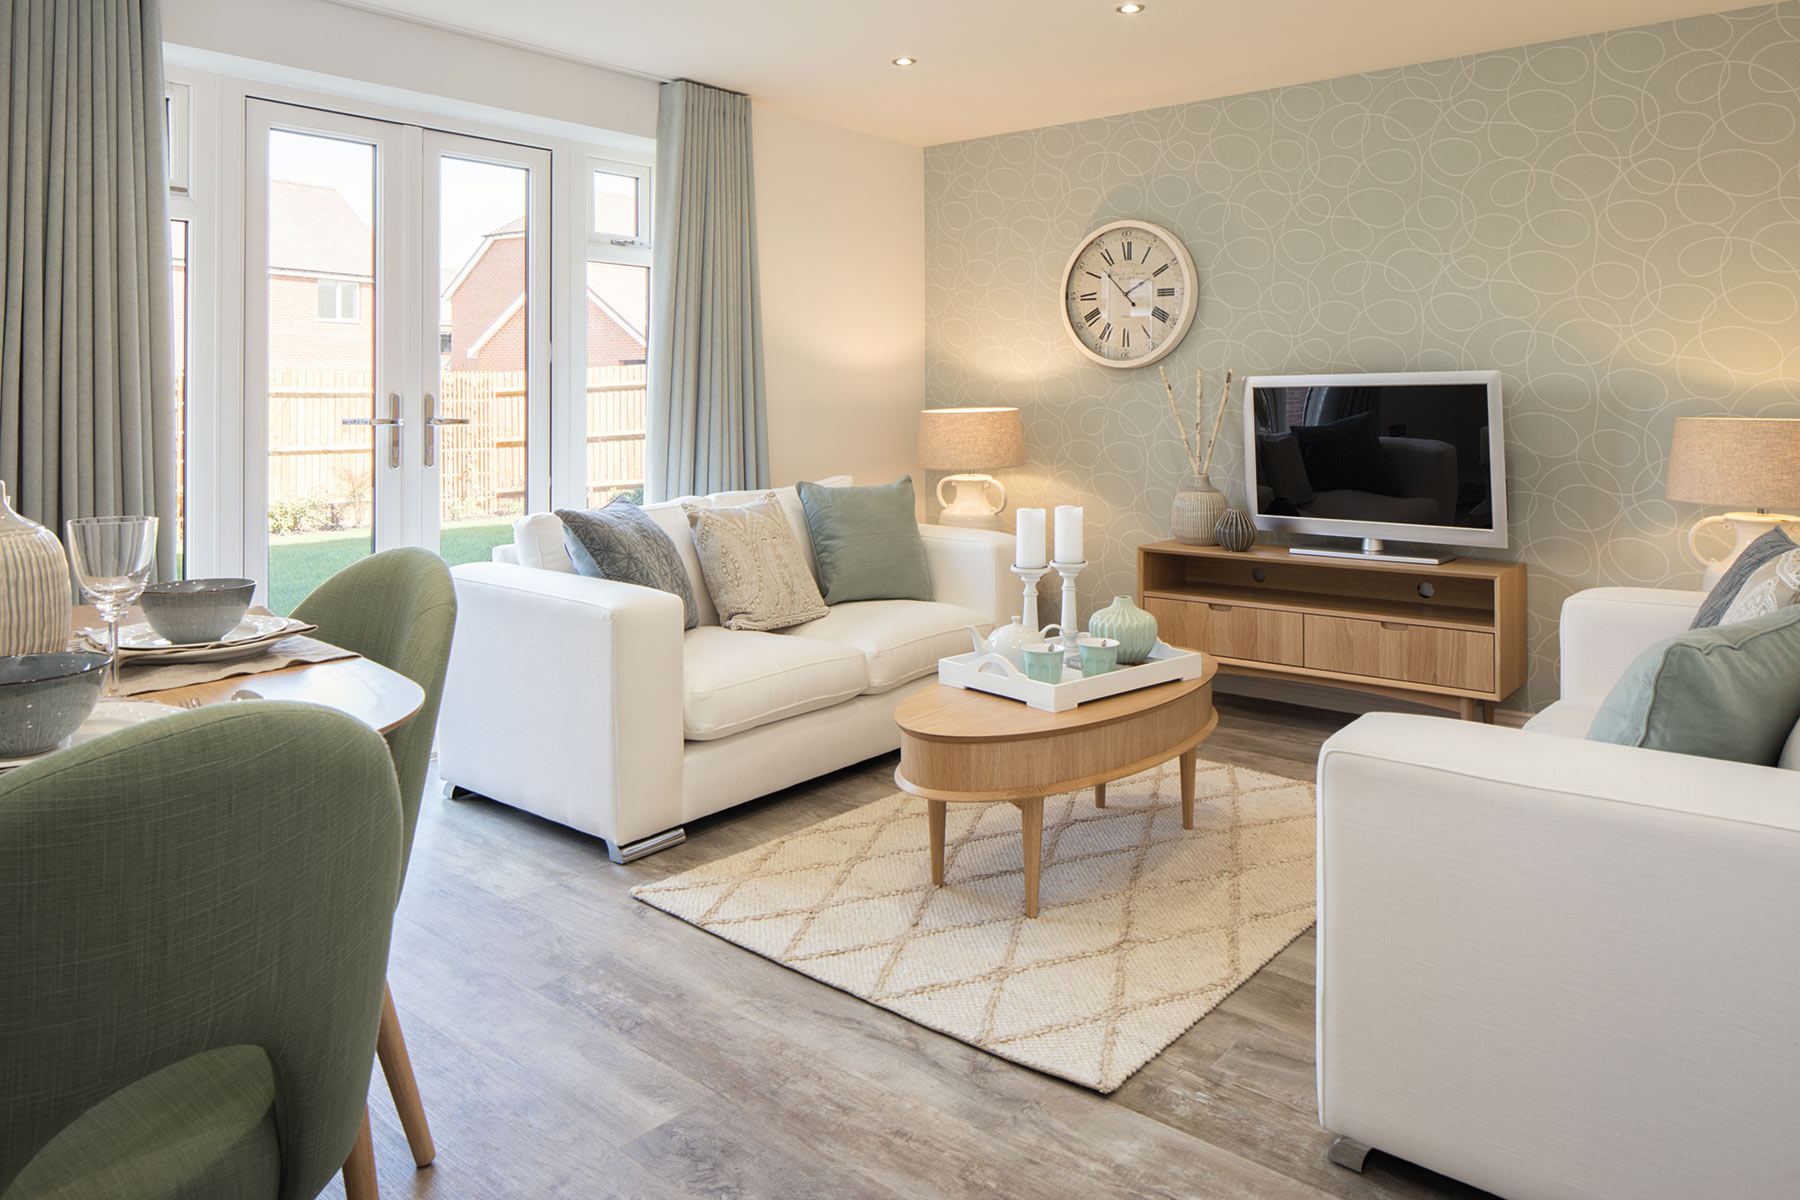 TW Exeter - Cranbrook - Crofton example living room 2